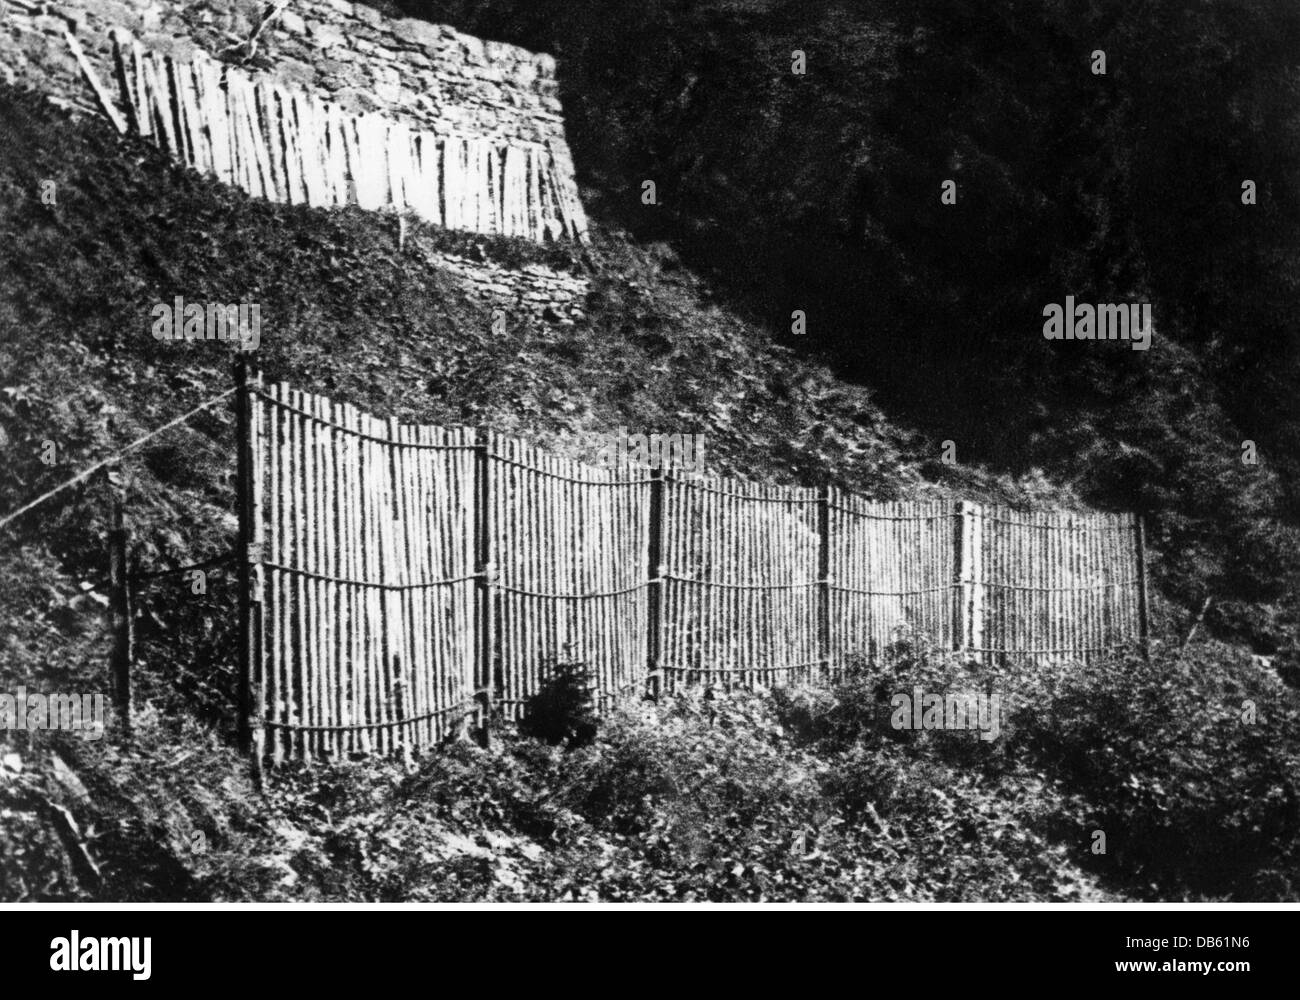 disasters, avalanches, prevention, rake made from railroad tracks, lathes and steel cables, Switzerland, 1930s, - Stock Image